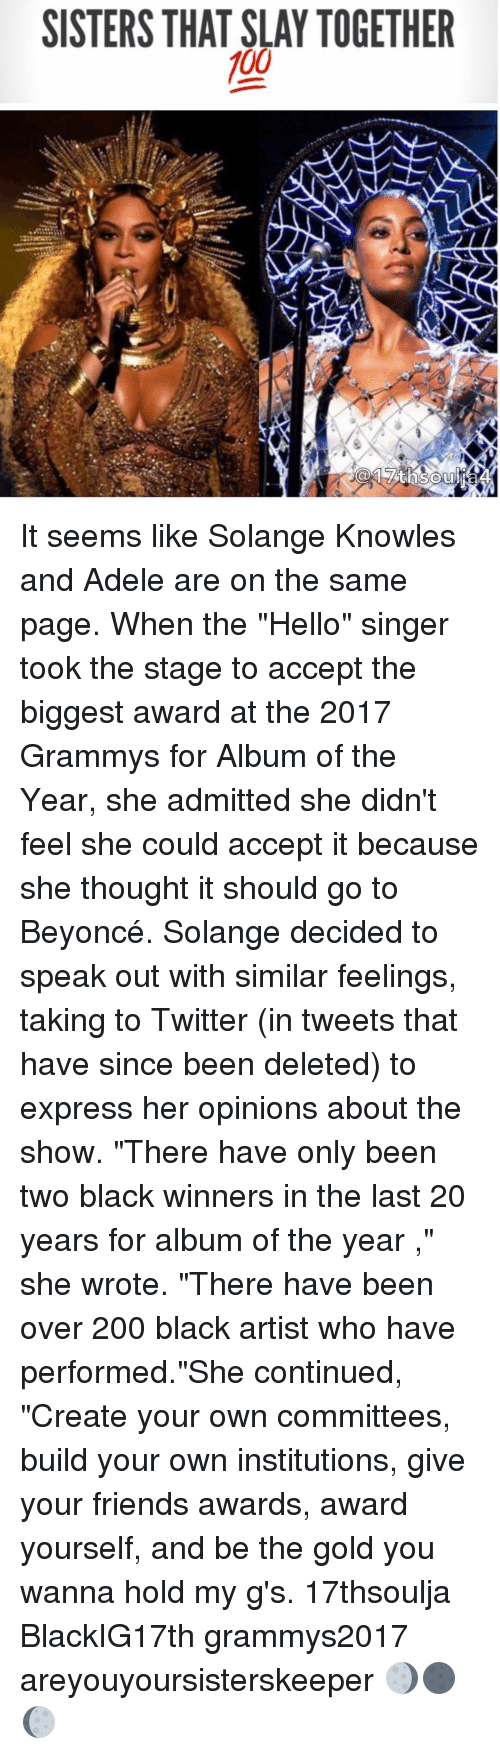 """adell: SISTERS THAT SLAY TOGETHER  100 It seems like Solange Knowles and Adele are on the same page. When the """"Hello"""" singer took the stage to accept the biggest award at the 2017 Grammys for Album of the Year, she admitted she didn't feel she could accept it because she thought it should go to Beyoncé. Solange decided to speak out with similar feelings, taking to Twitter (in tweets that have since been deleted) to express her opinions about the show. """"There have only been two black winners in the last 20 years for album of the year ,"""" she wrote. """"There have been over 200 black artist who have performed.""""She continued, """"Create your own committees, build your own institutions, give your friends awards, award yourself, and be the gold you wanna hold my g's. 17thsoulja BlackIG17th grammys2017 areyouyoursisterskeeper 🌖🌑🌔"""